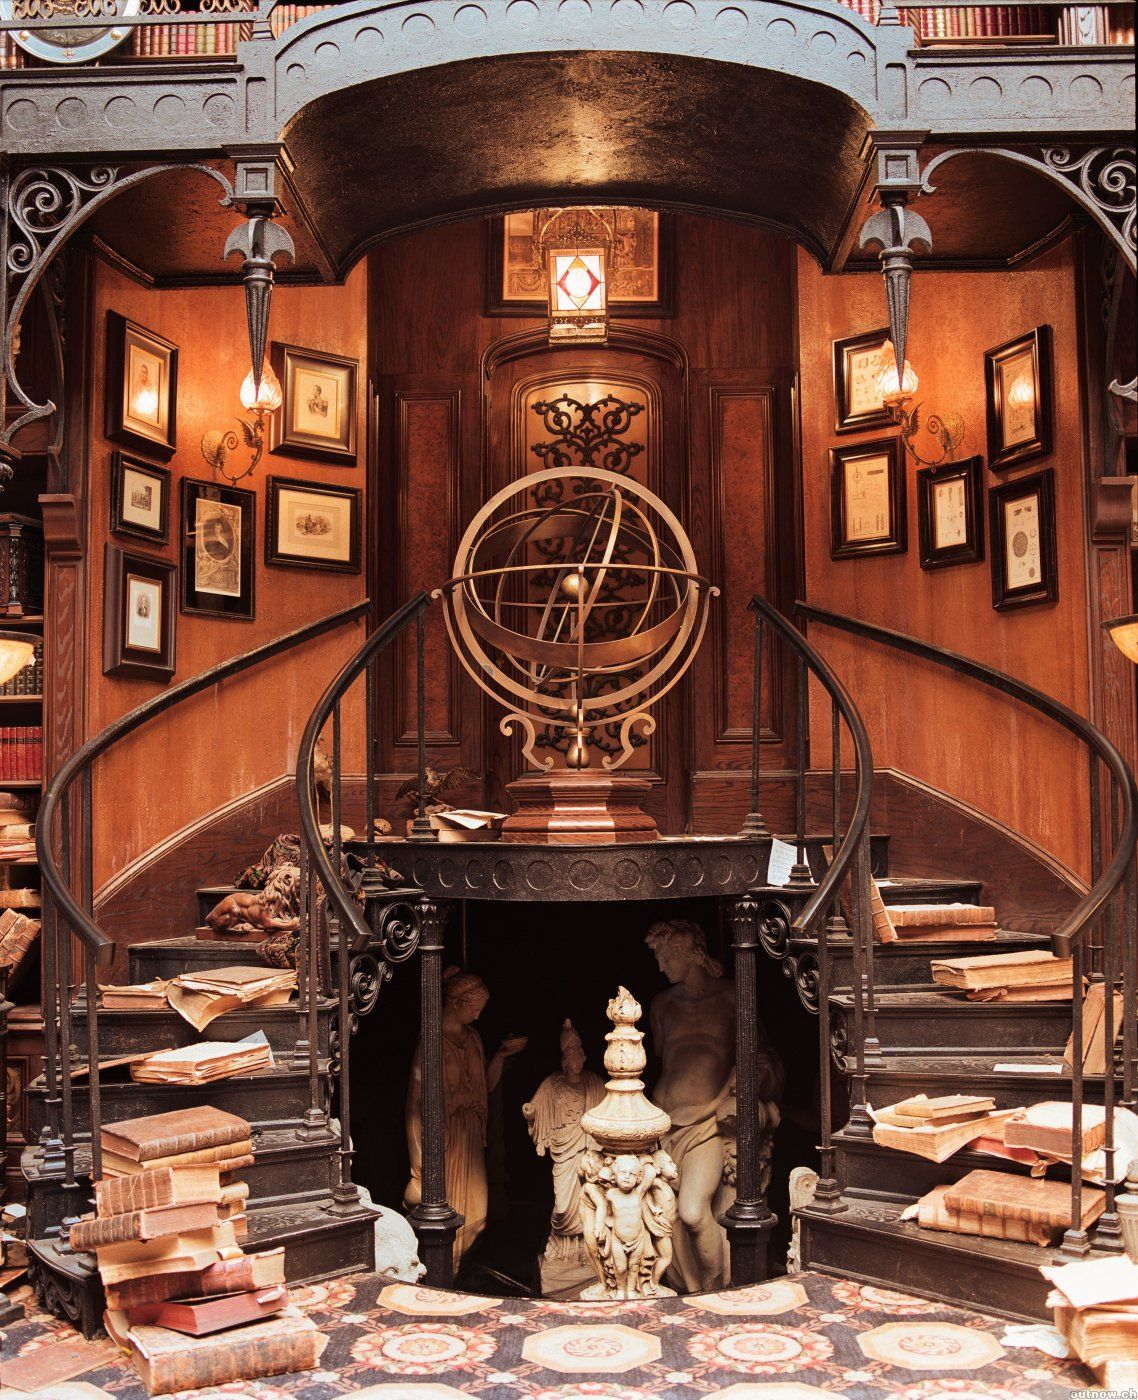 Steampunk Decor Steampunk Tendencies The Study Set From The Haunted